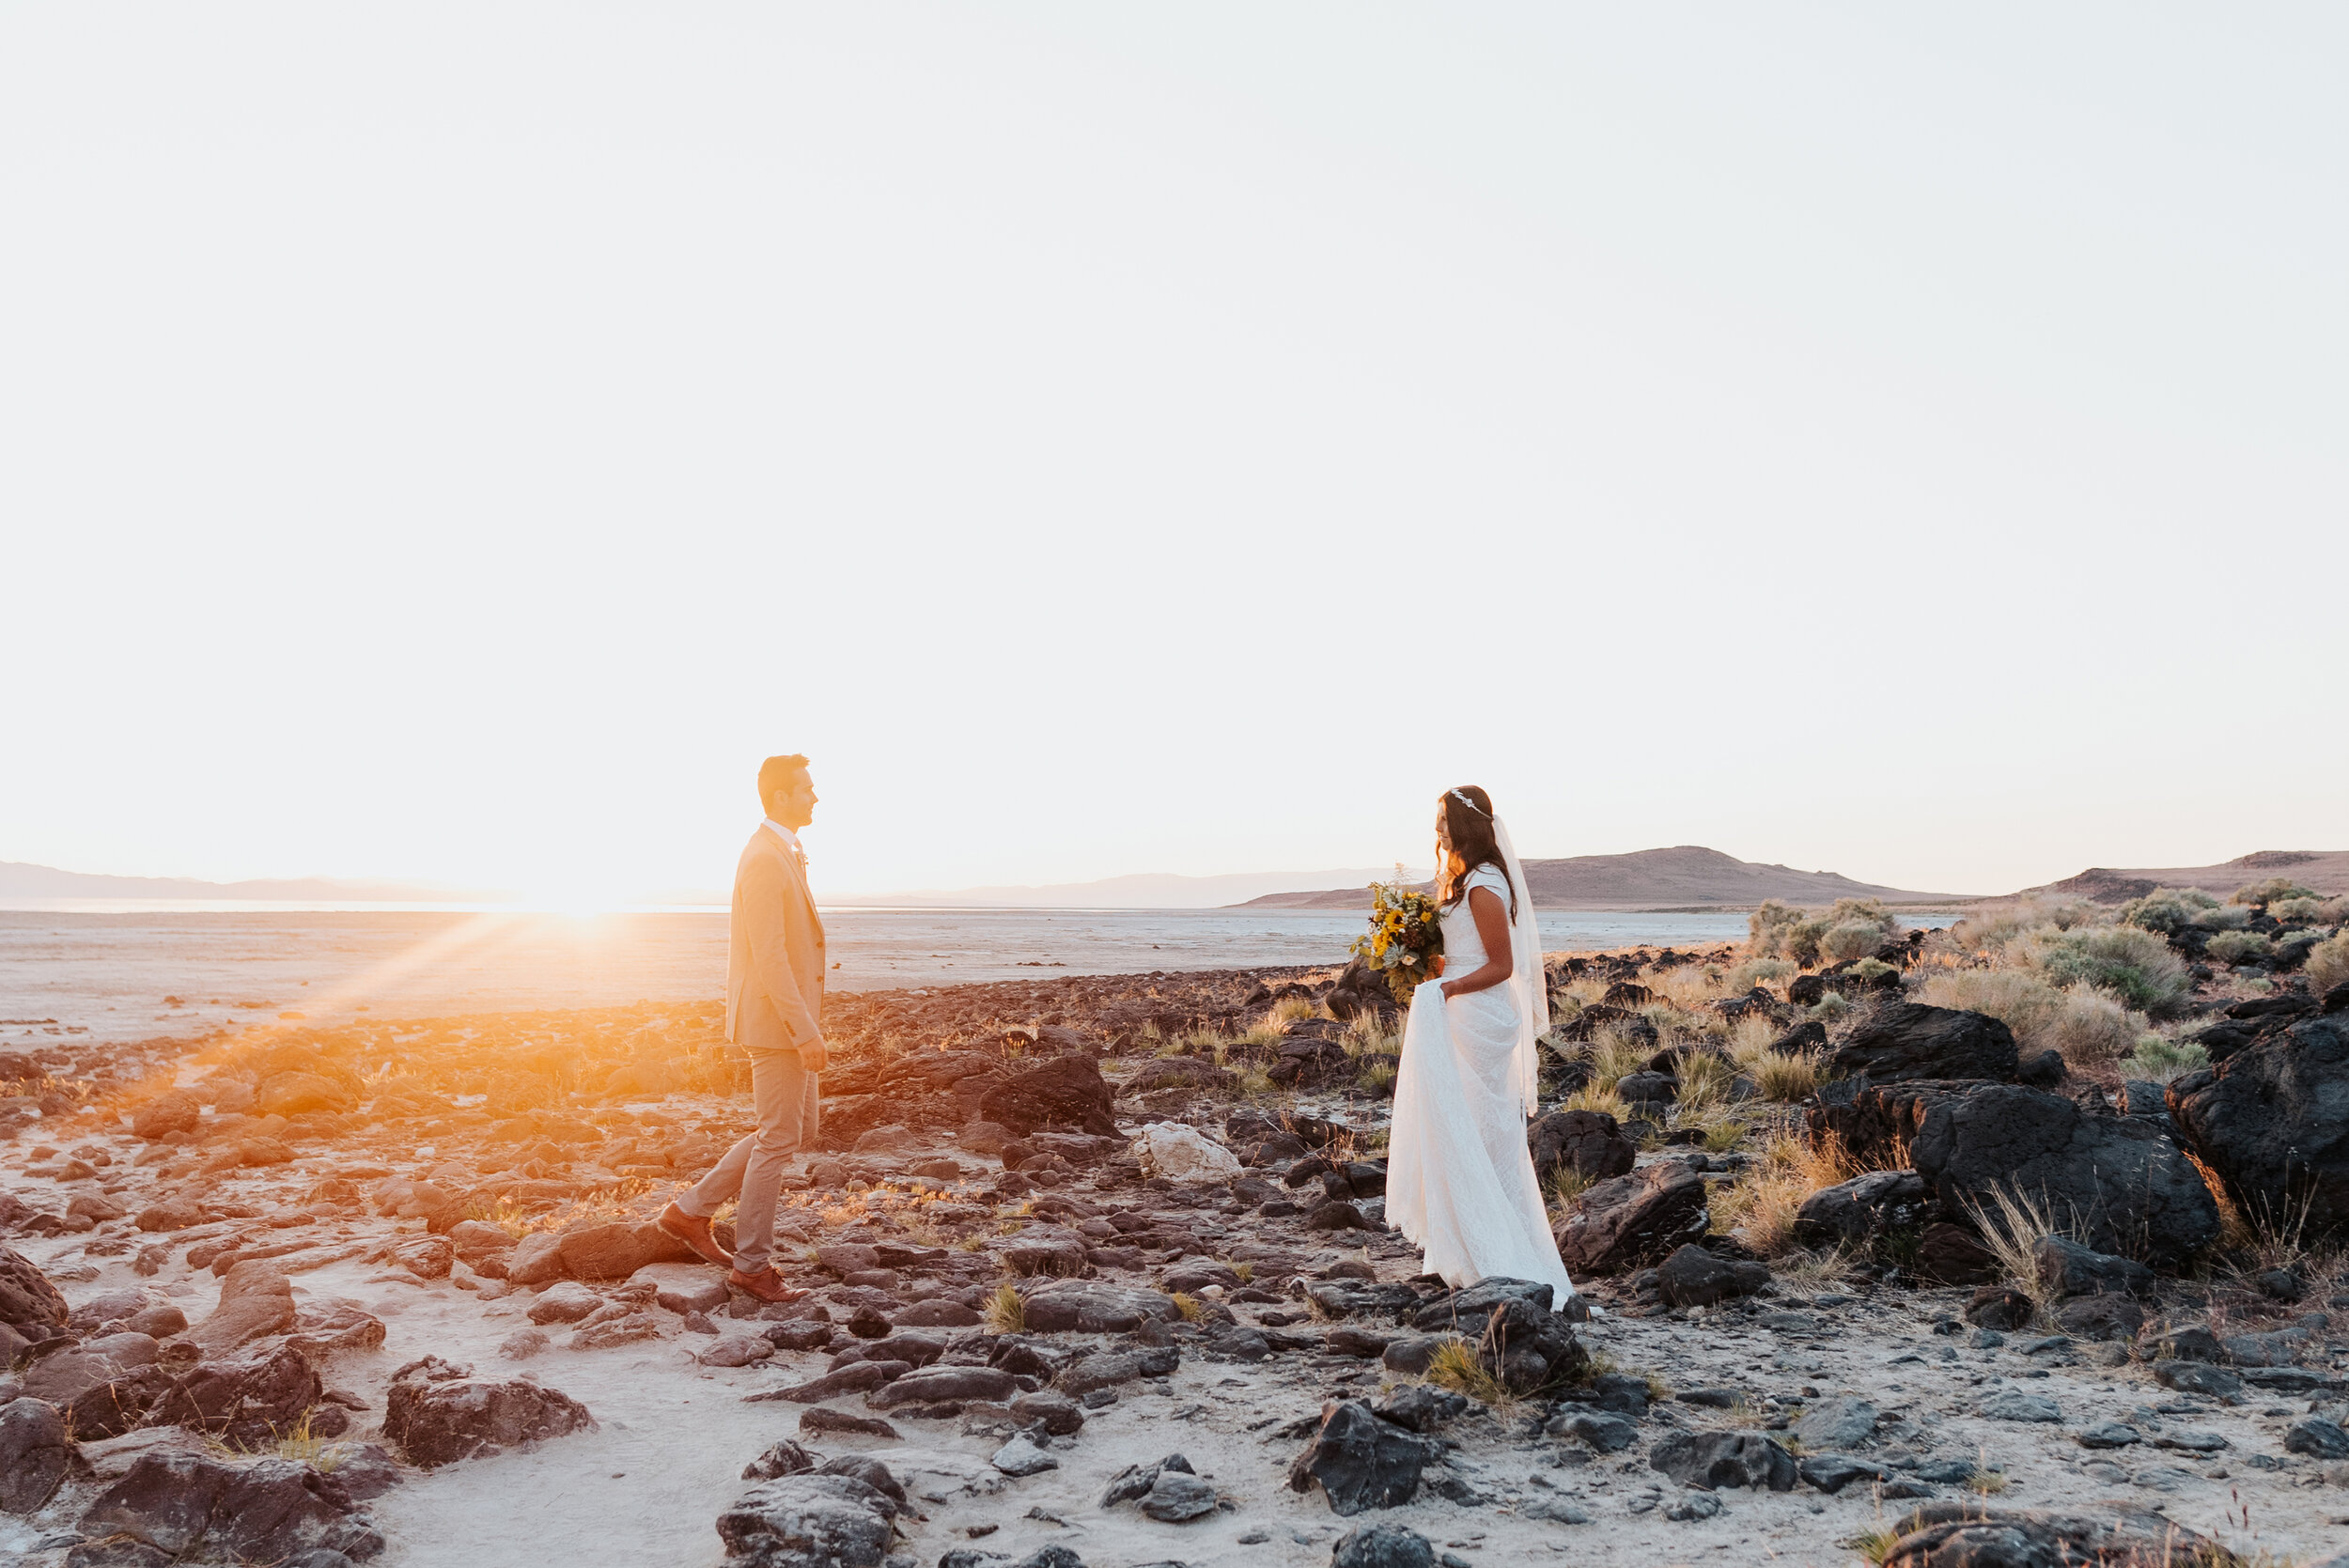 Walking toward each other across the rocky shore of the Spiral Jetty, this bride and groom were thrilled to enjoy their formal session dressed in their wedding clothes in anticipation for their wedding day! #spiraljetty #GreatSaltLake #formalsession #SaltFlats #sunsetphotosession #NorthernUtah #weddingphotographer #formalphotographer #brideandgroom #outdoorformals #weddingformalphotography